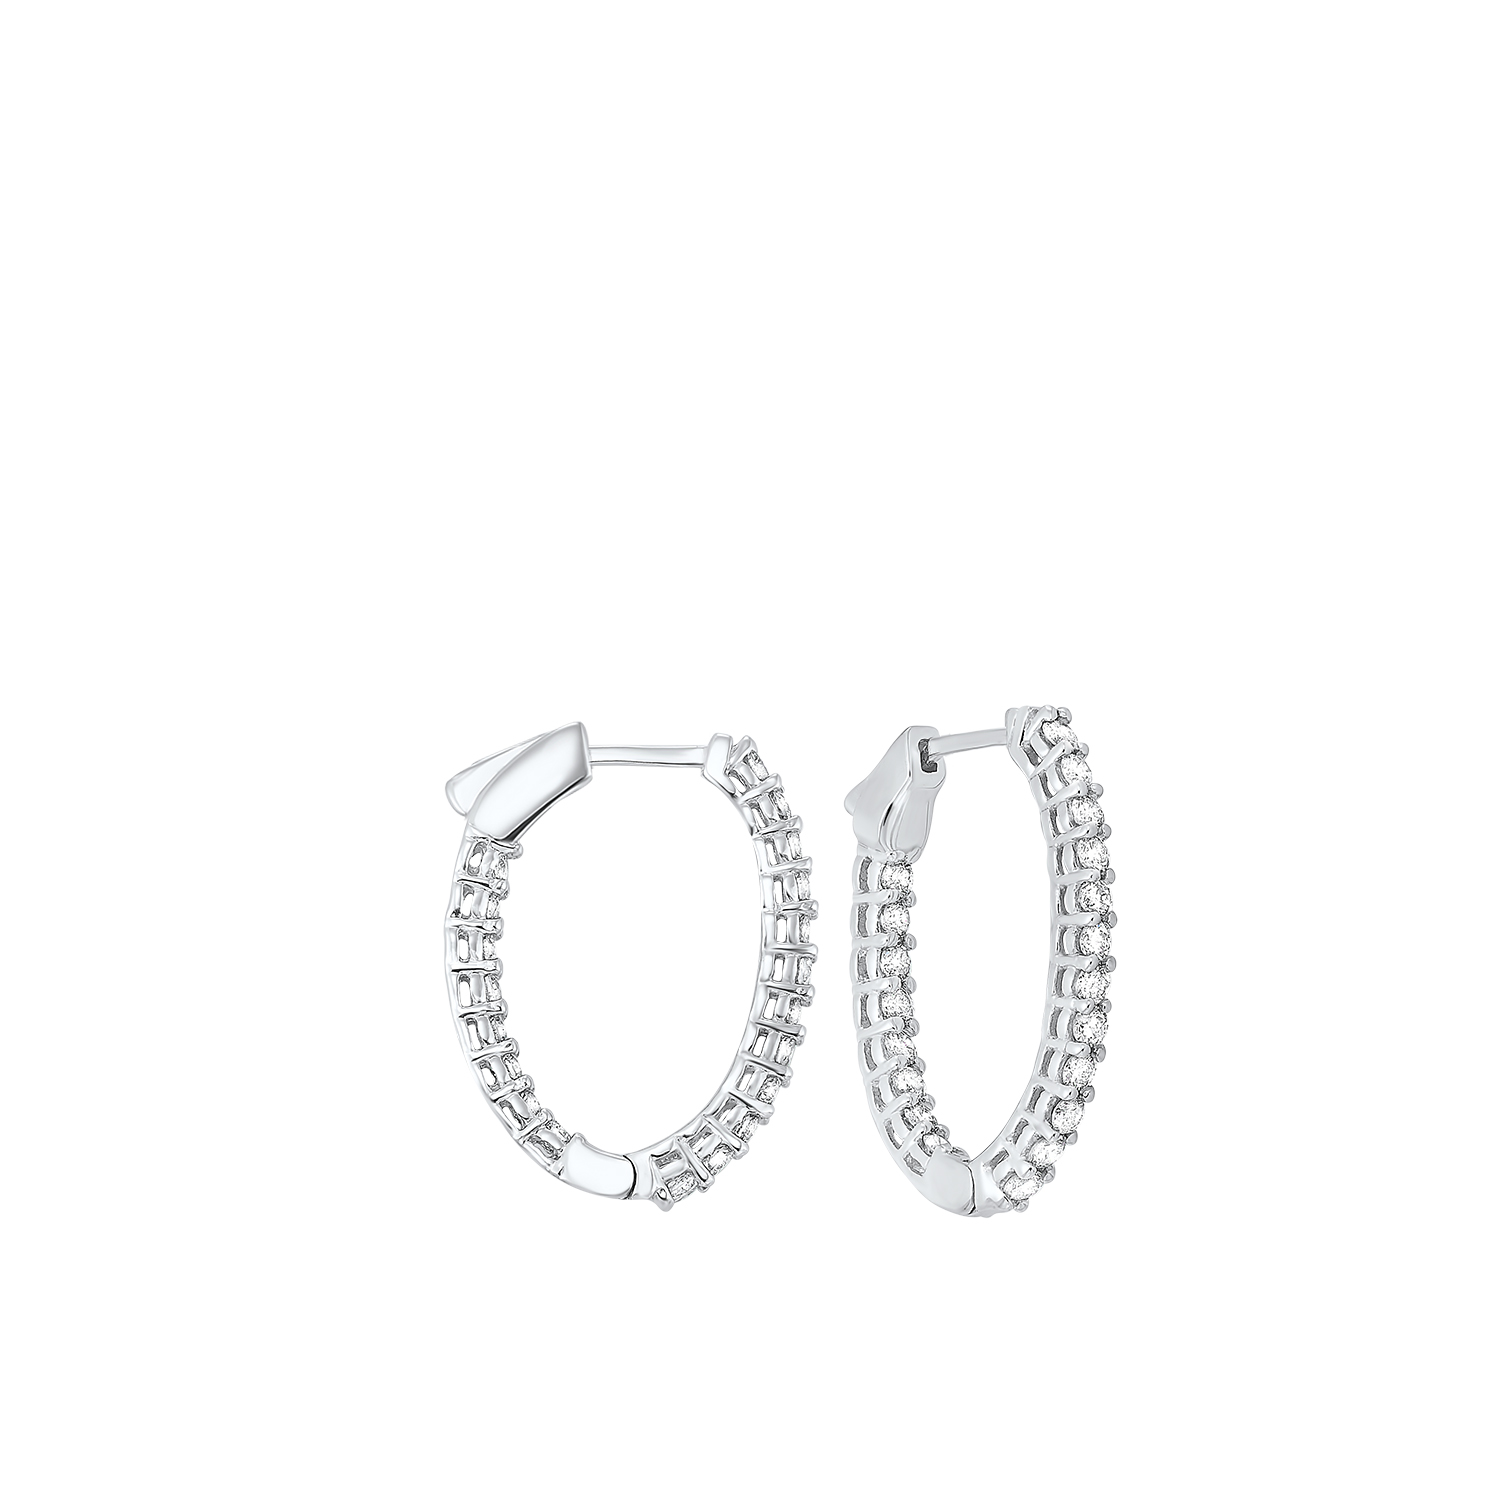 In-Out Diamond Hoop Earrings in 14K White Gold (1 ct. tw.) I2/I3 - H/K - Our beautiful  In-Out Diamond Hoop Earrings in 14K White Gold (1 ct. tw.)  is the perfect jewelry choice for you or your loved one. We have engagement rings, wedding bands, earrings, and so much more.